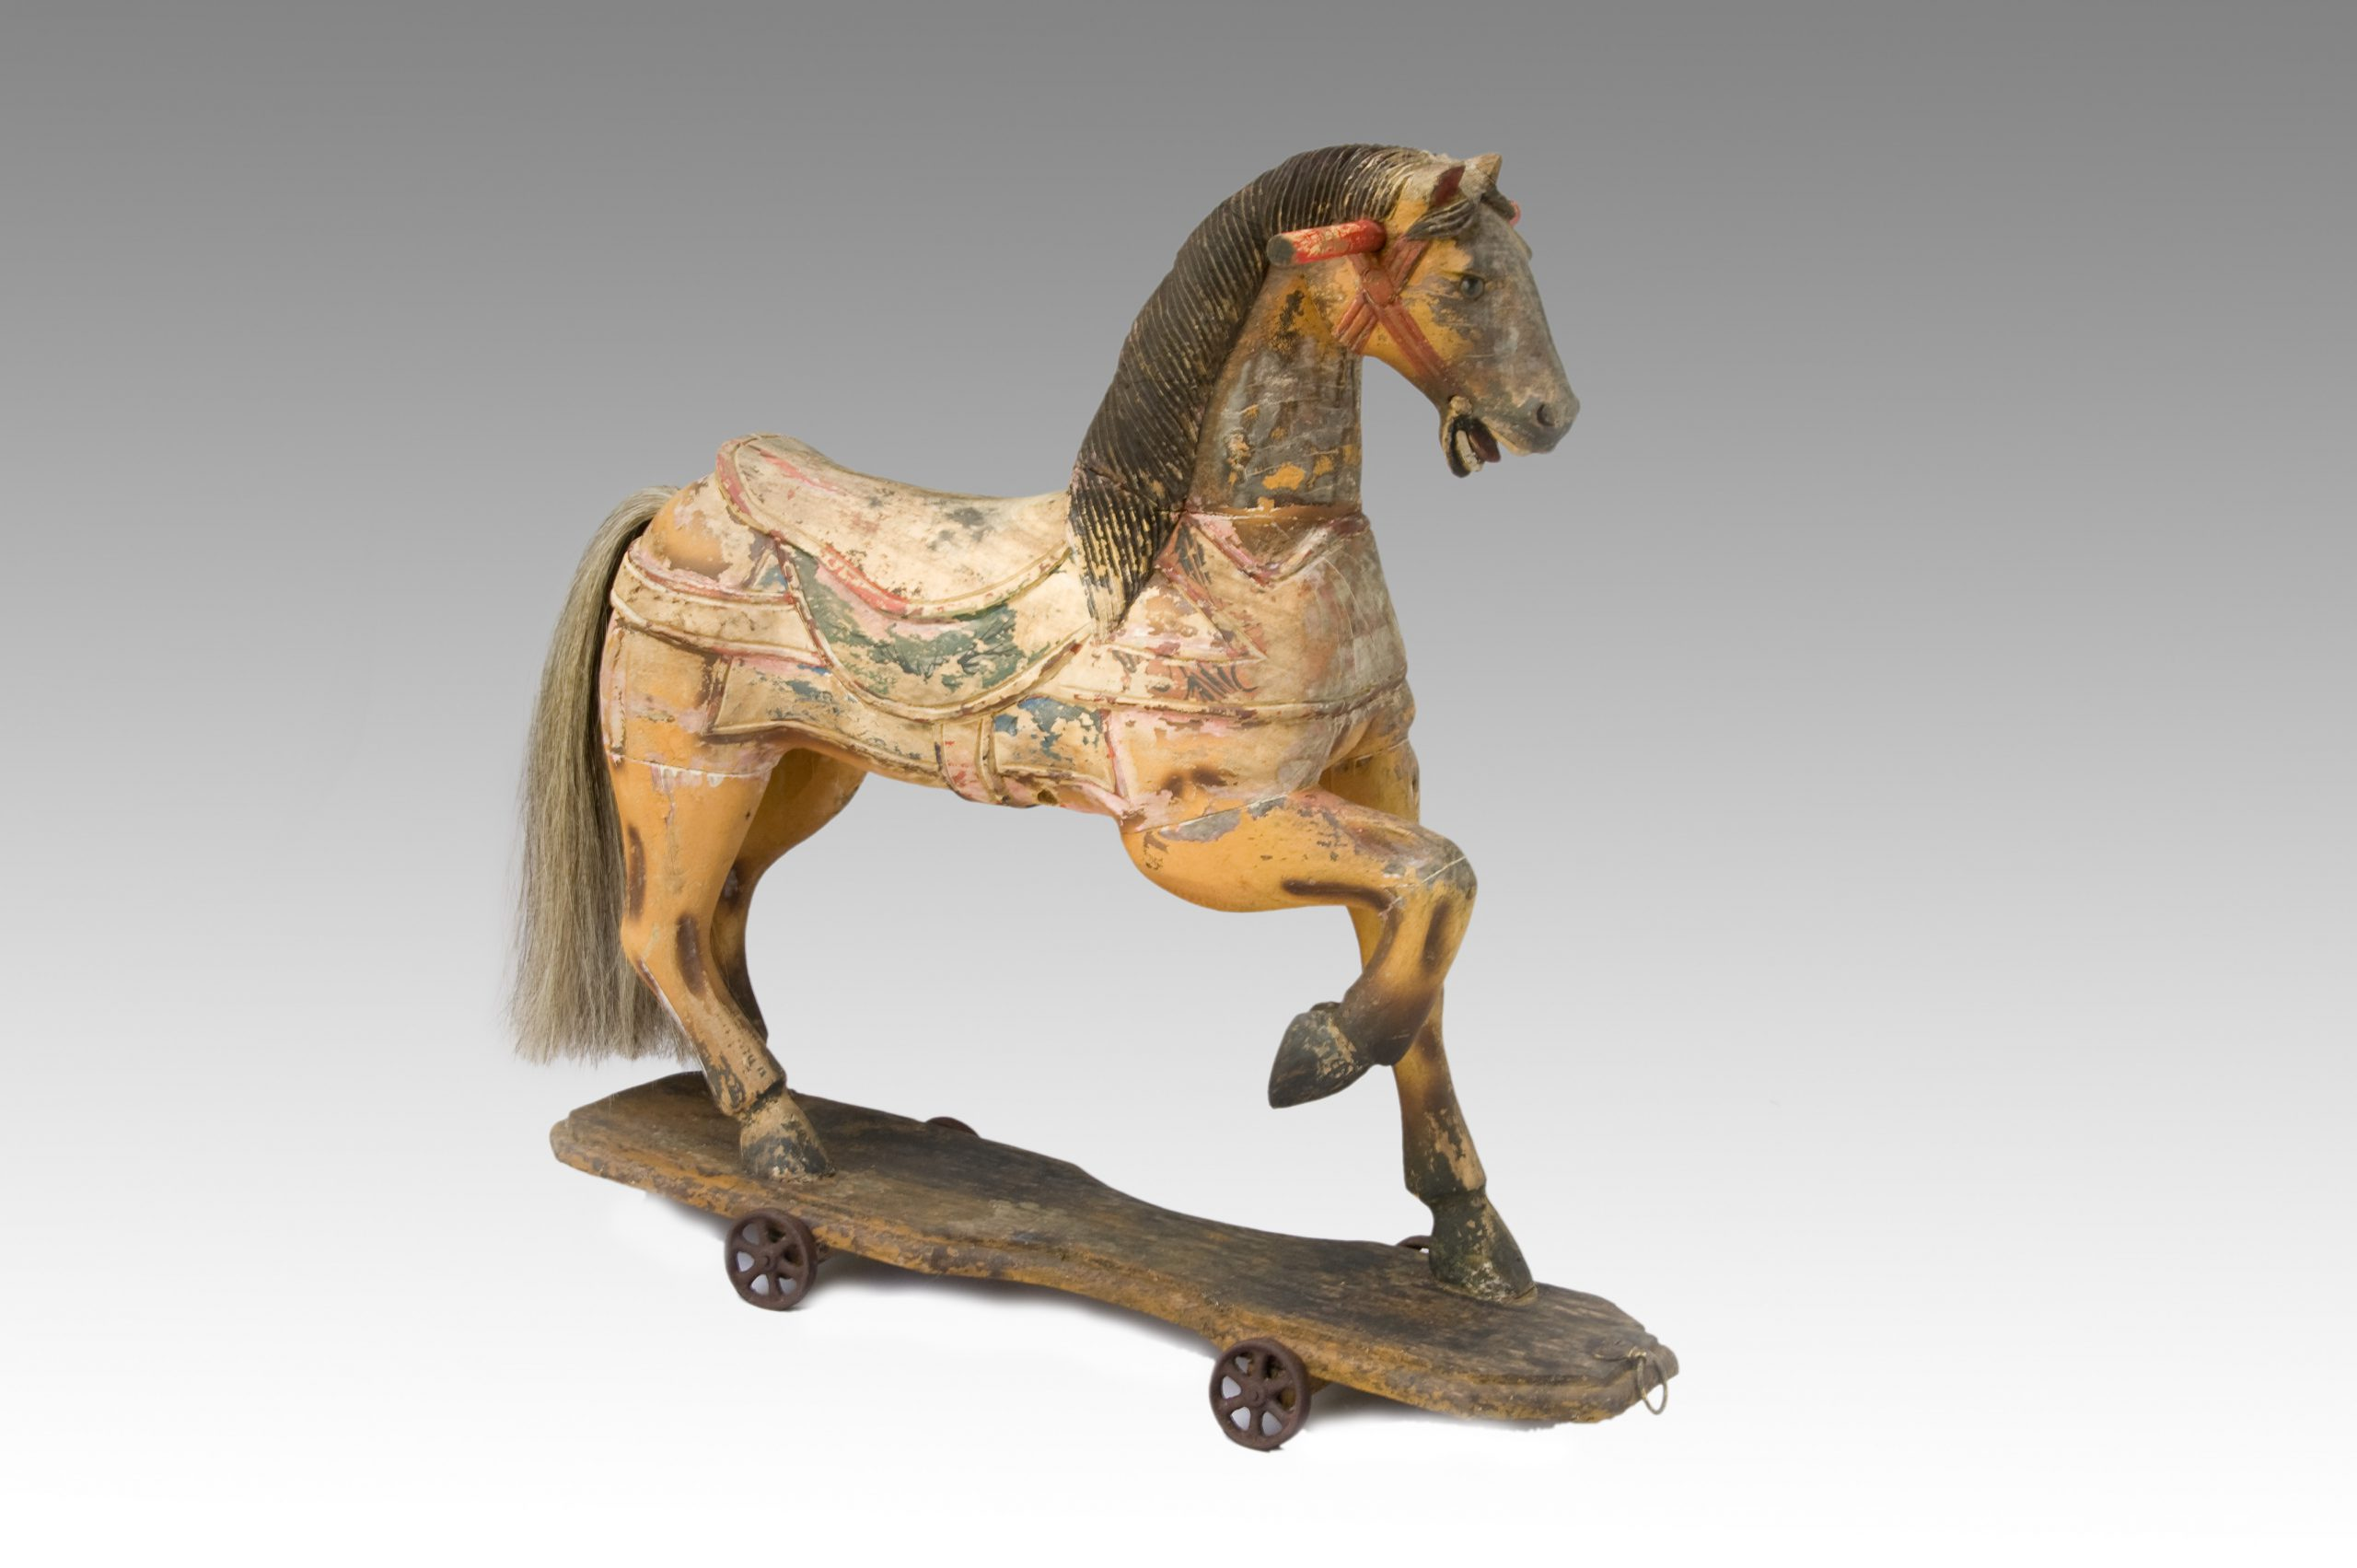 Image of A Carousel/Merry-go-round Horse